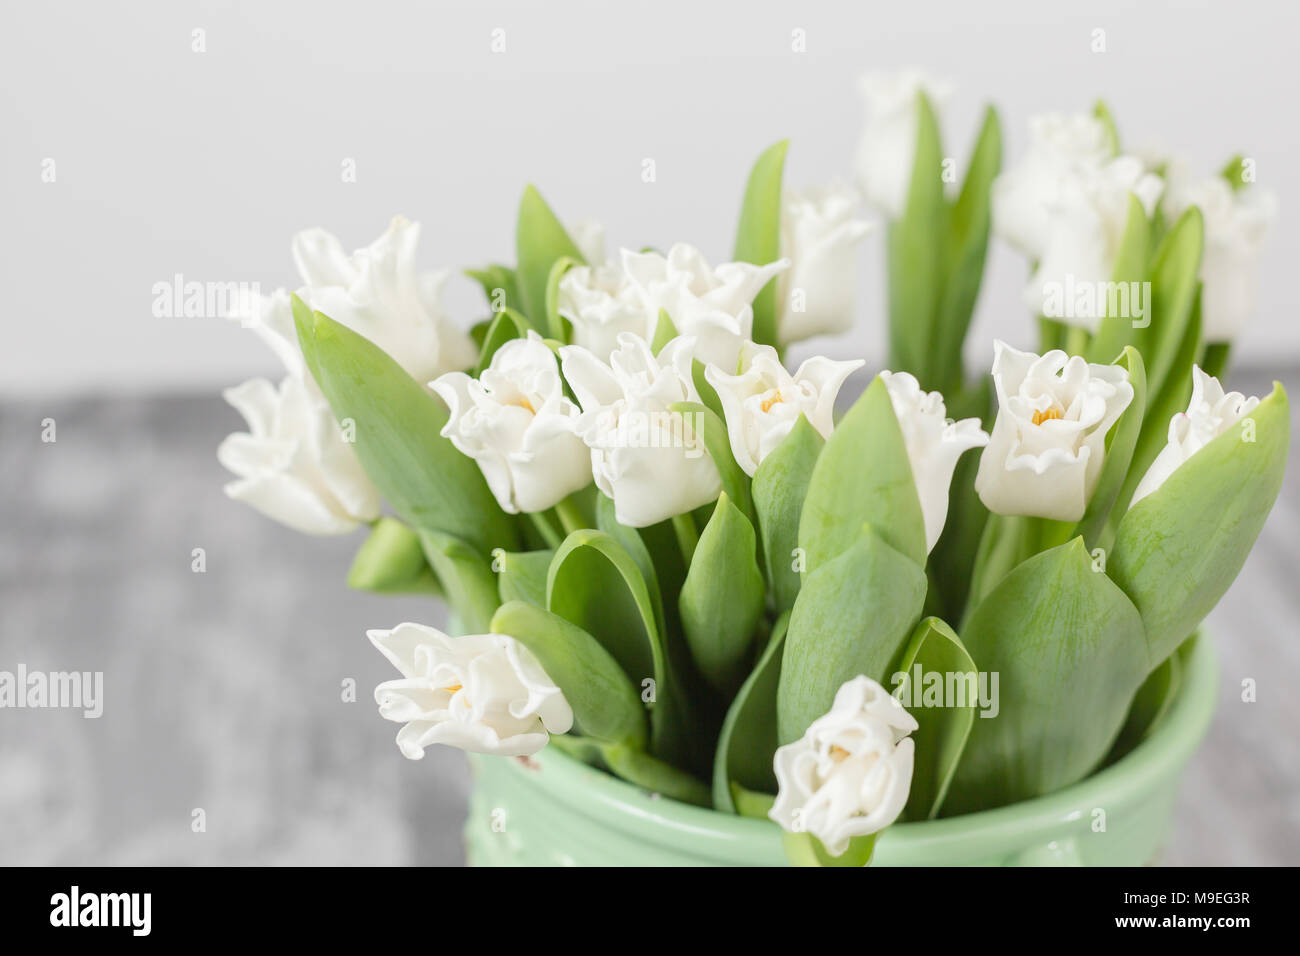 Tulips Of White Color In Green Vase Floral Natural Backdrop